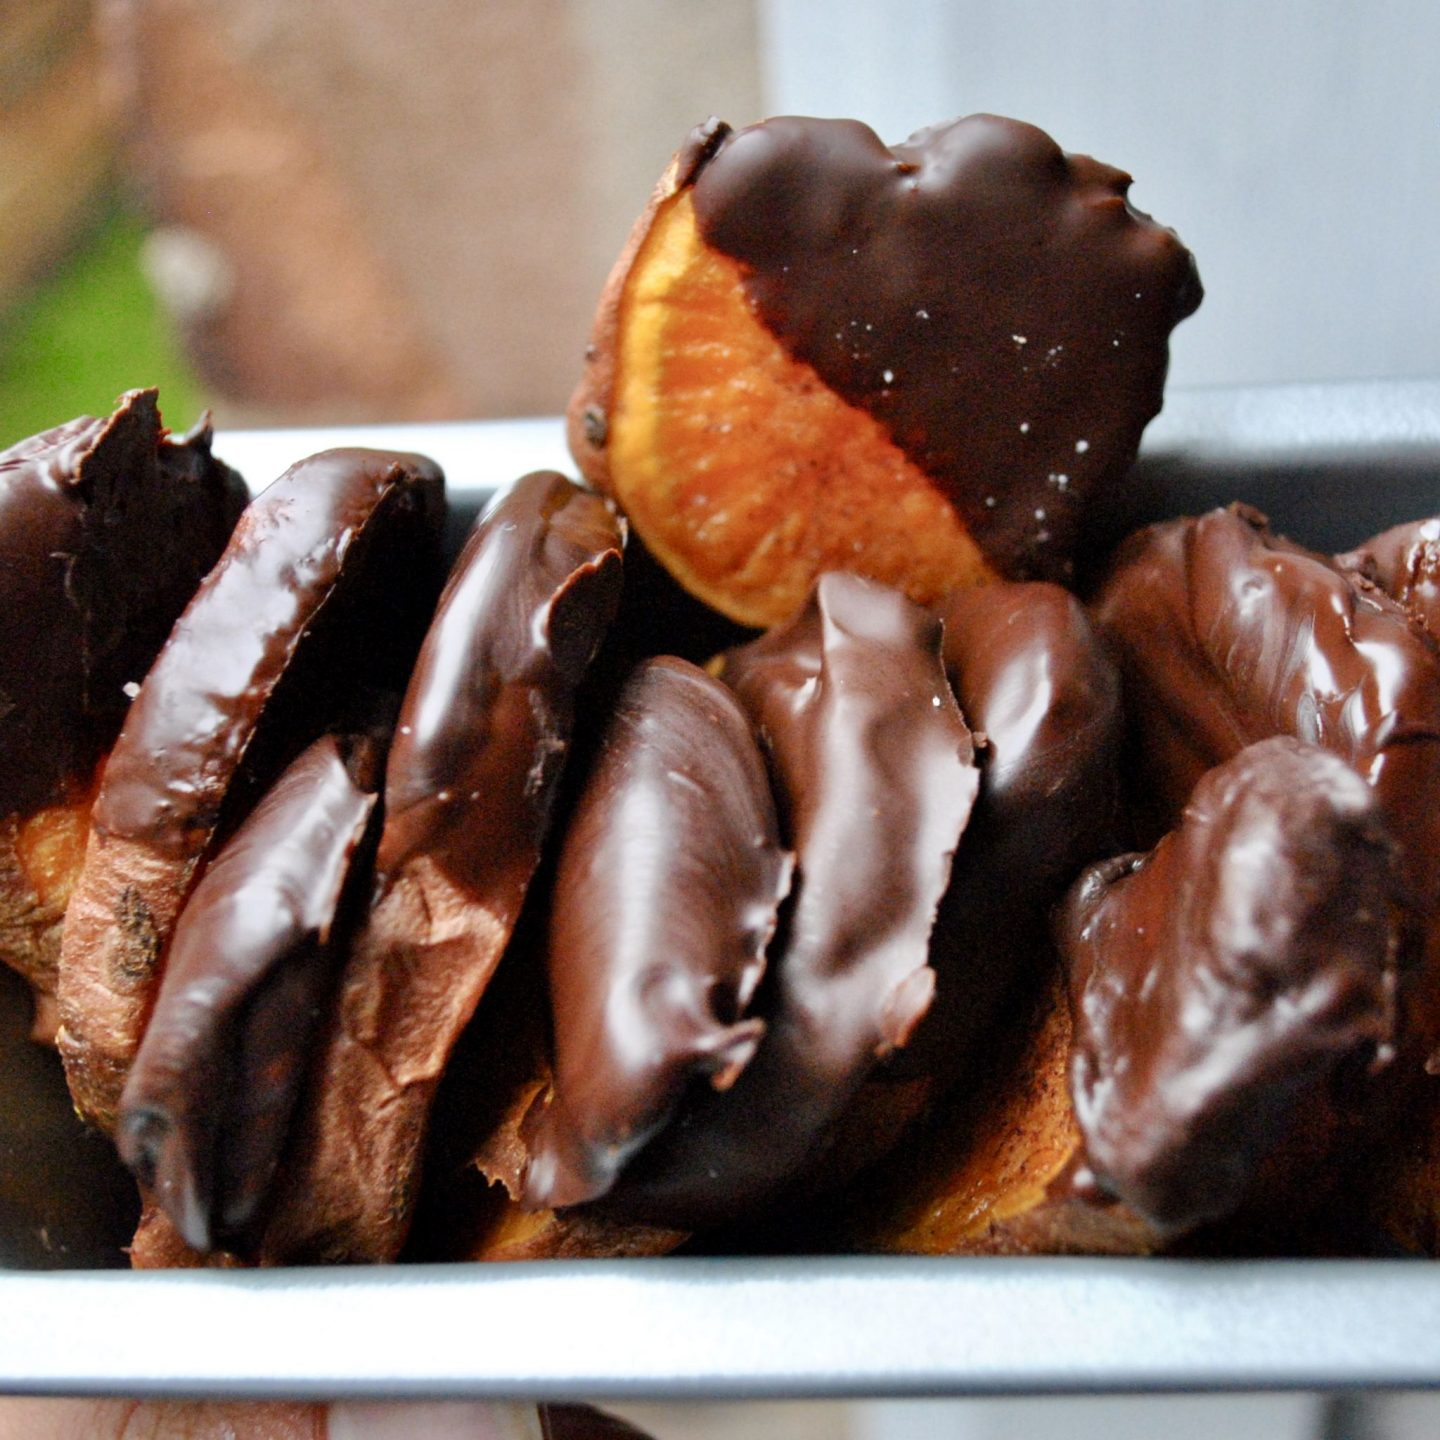 Chocolate-dipped sweet potato chips